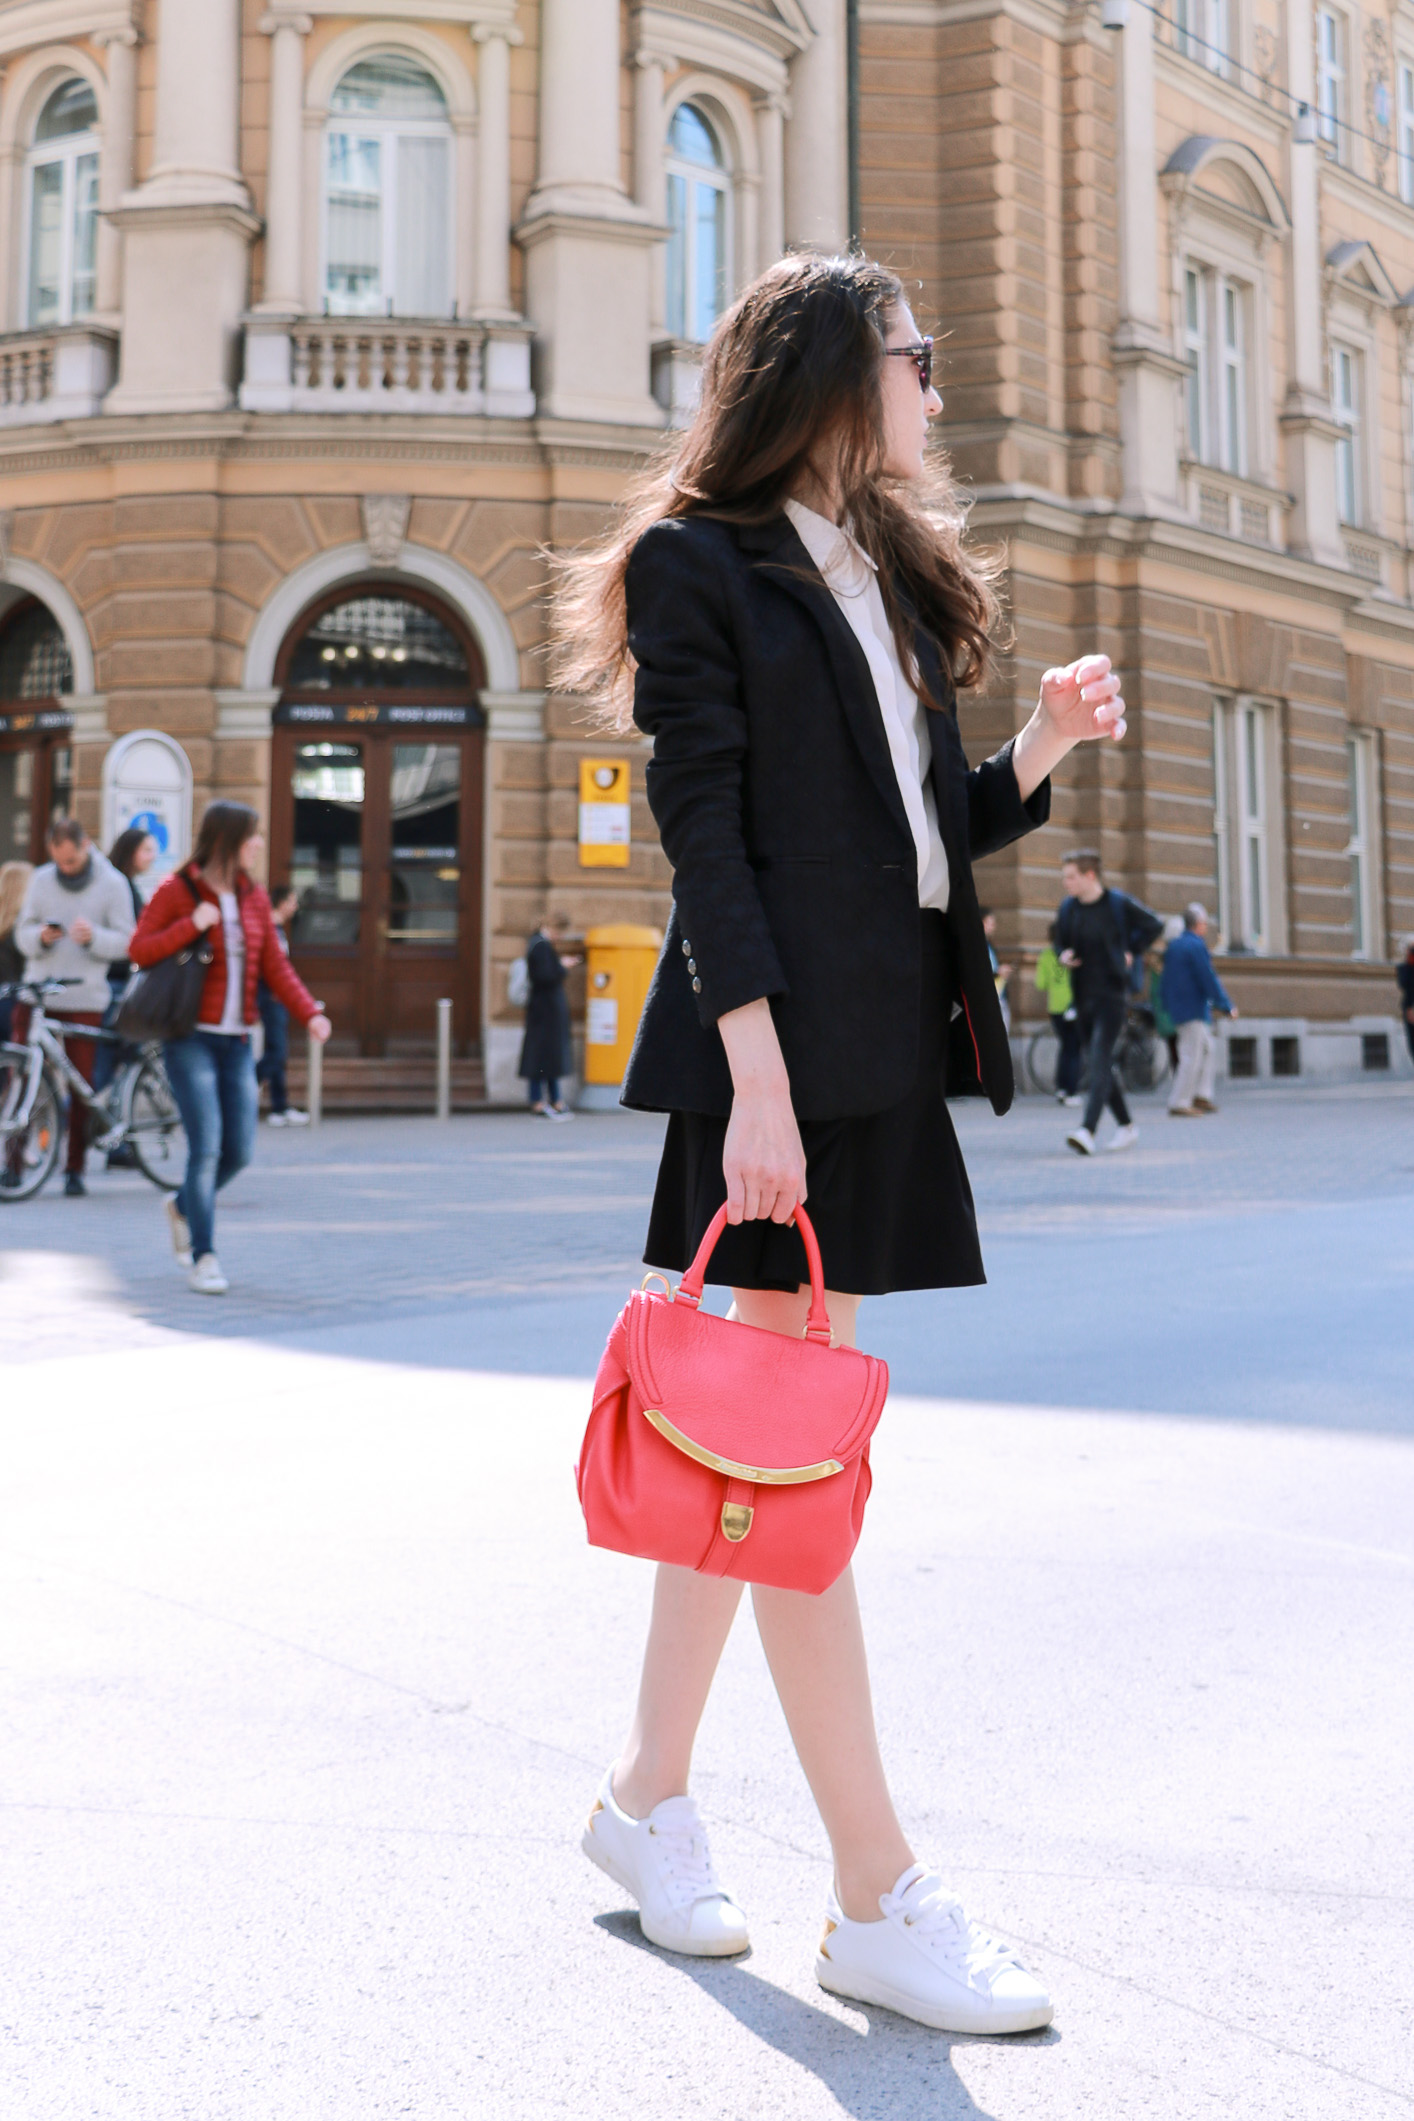 Fashion blogger Veronika Lipar of Brunette From Wall Street sharing how to dress like a Parisian this spring